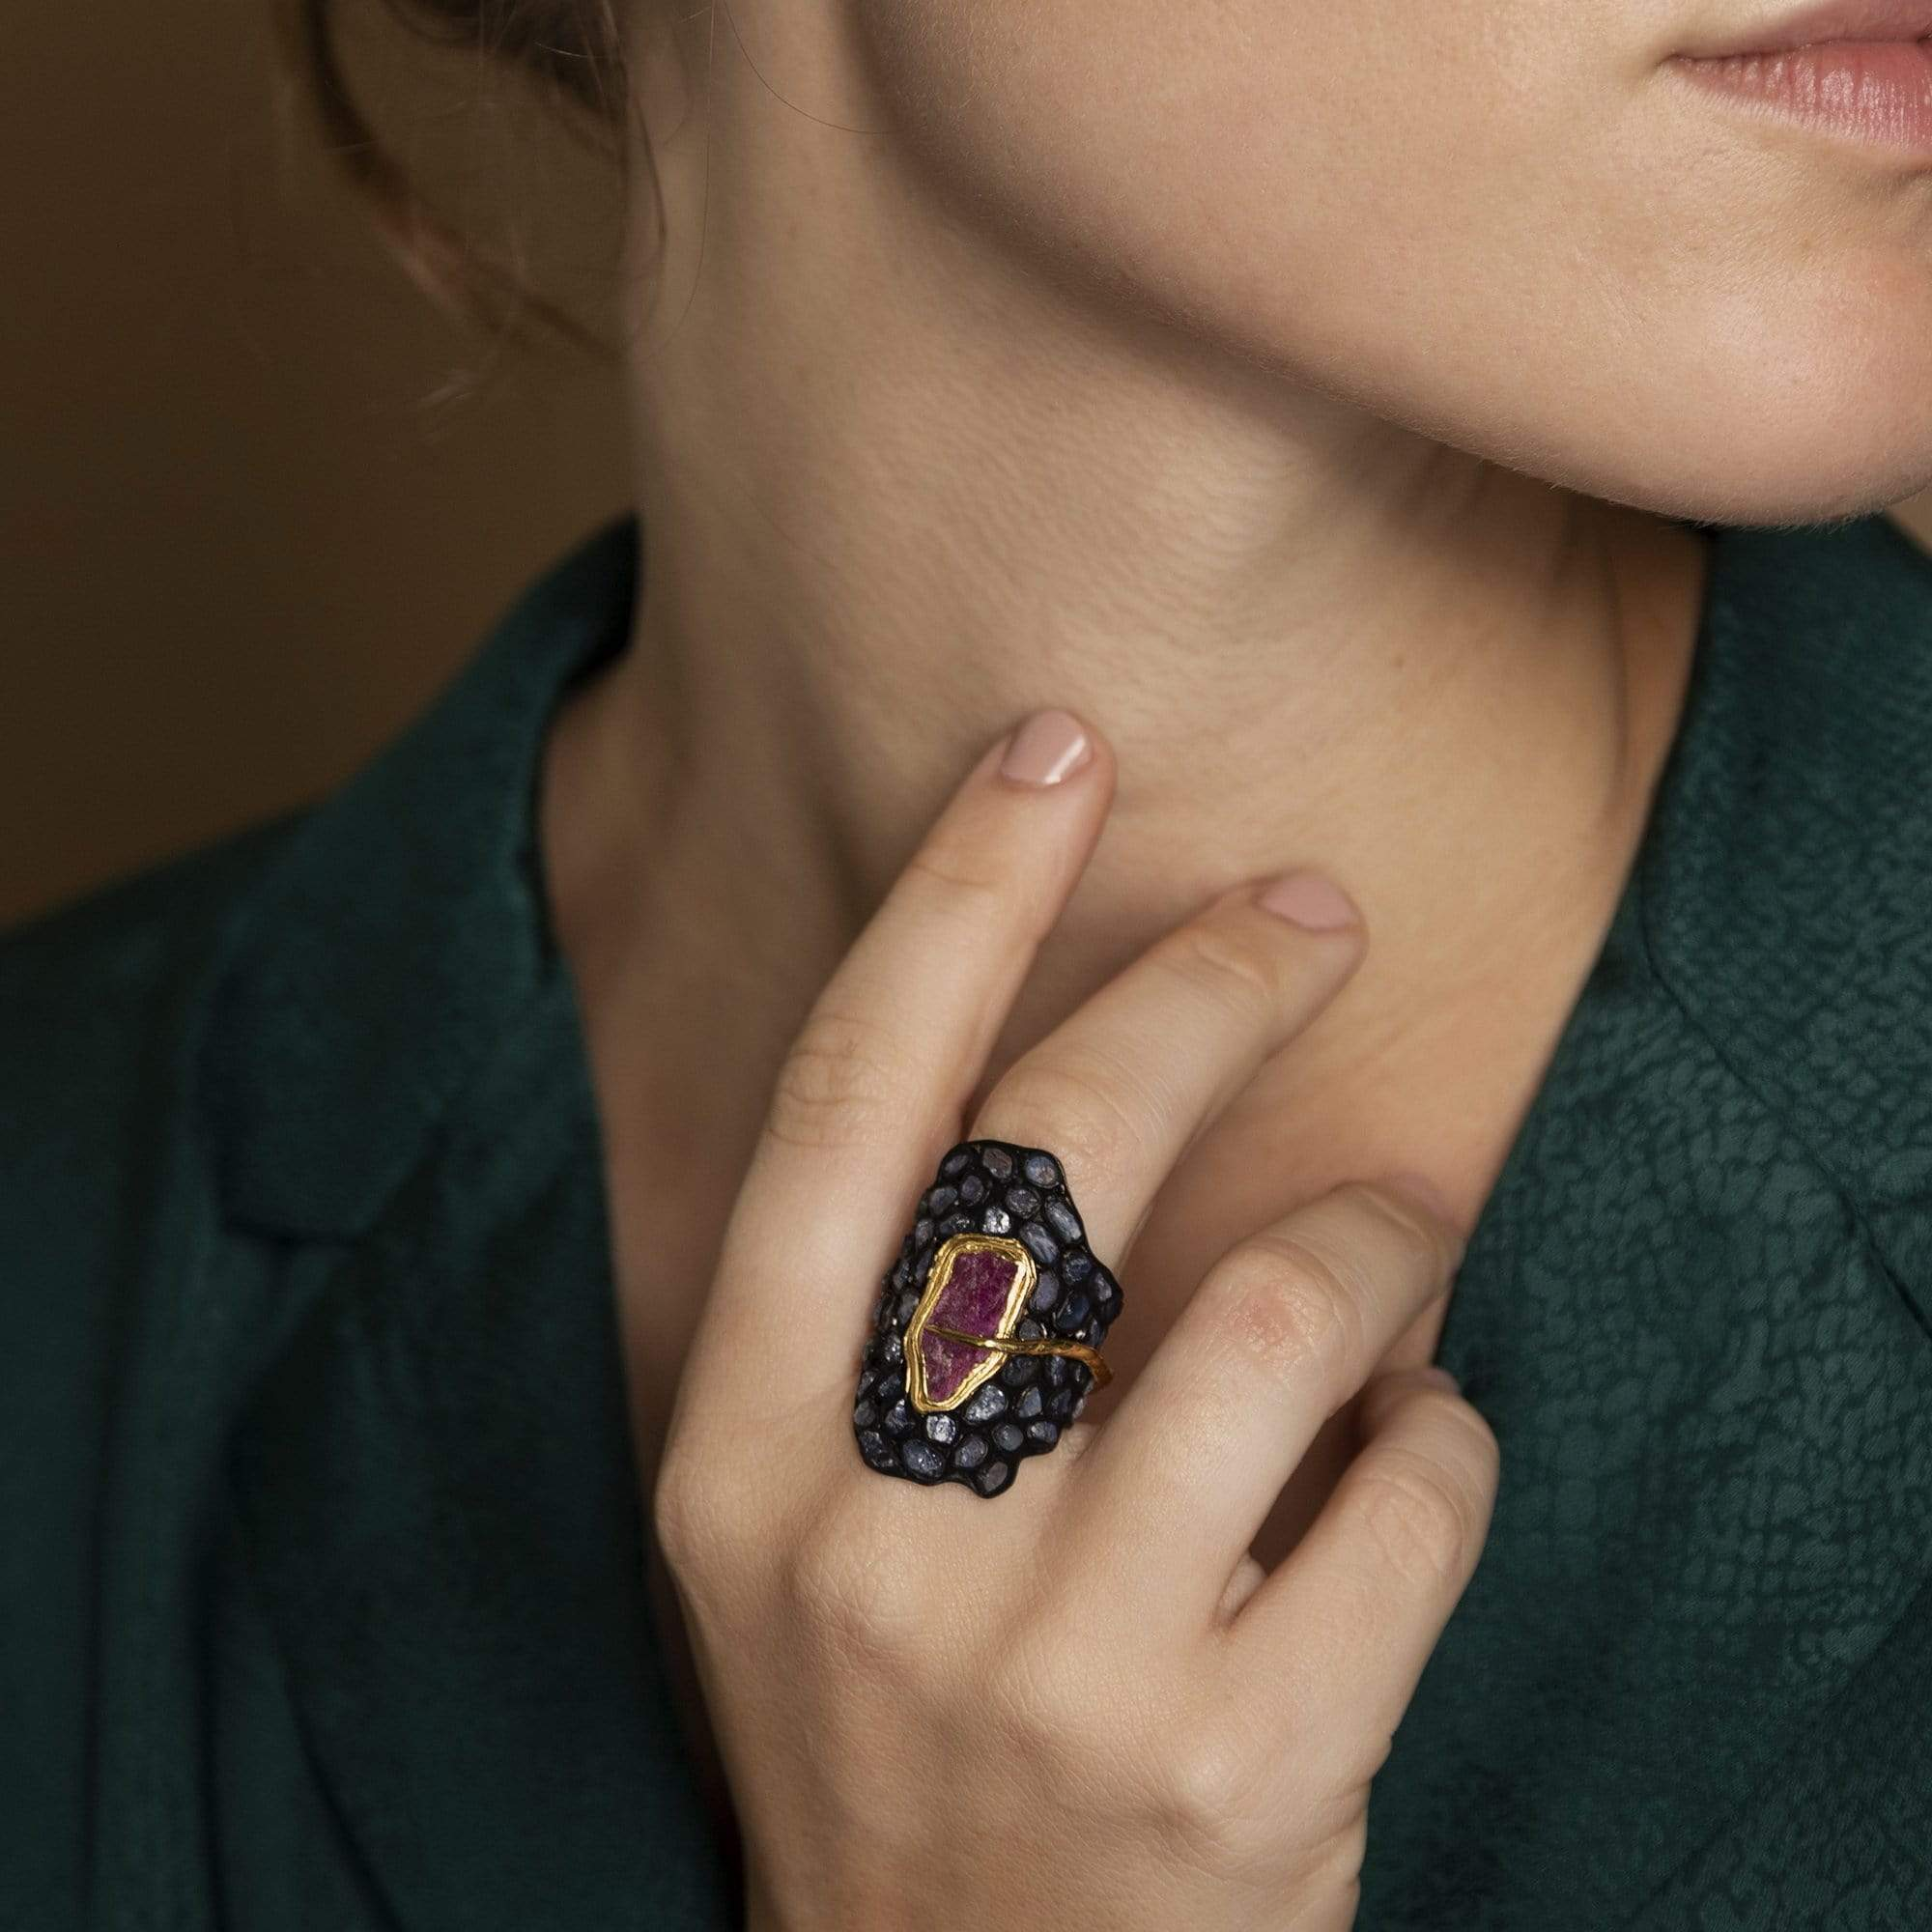 Dynamis Ring, Anthracite, black, Exclusive, Gold, Ruby, Sapphire, spo-disabled, StoneColor:DeepBlue, StoneColor:Pink, Style:Statement, Type:StainedGlass Ring